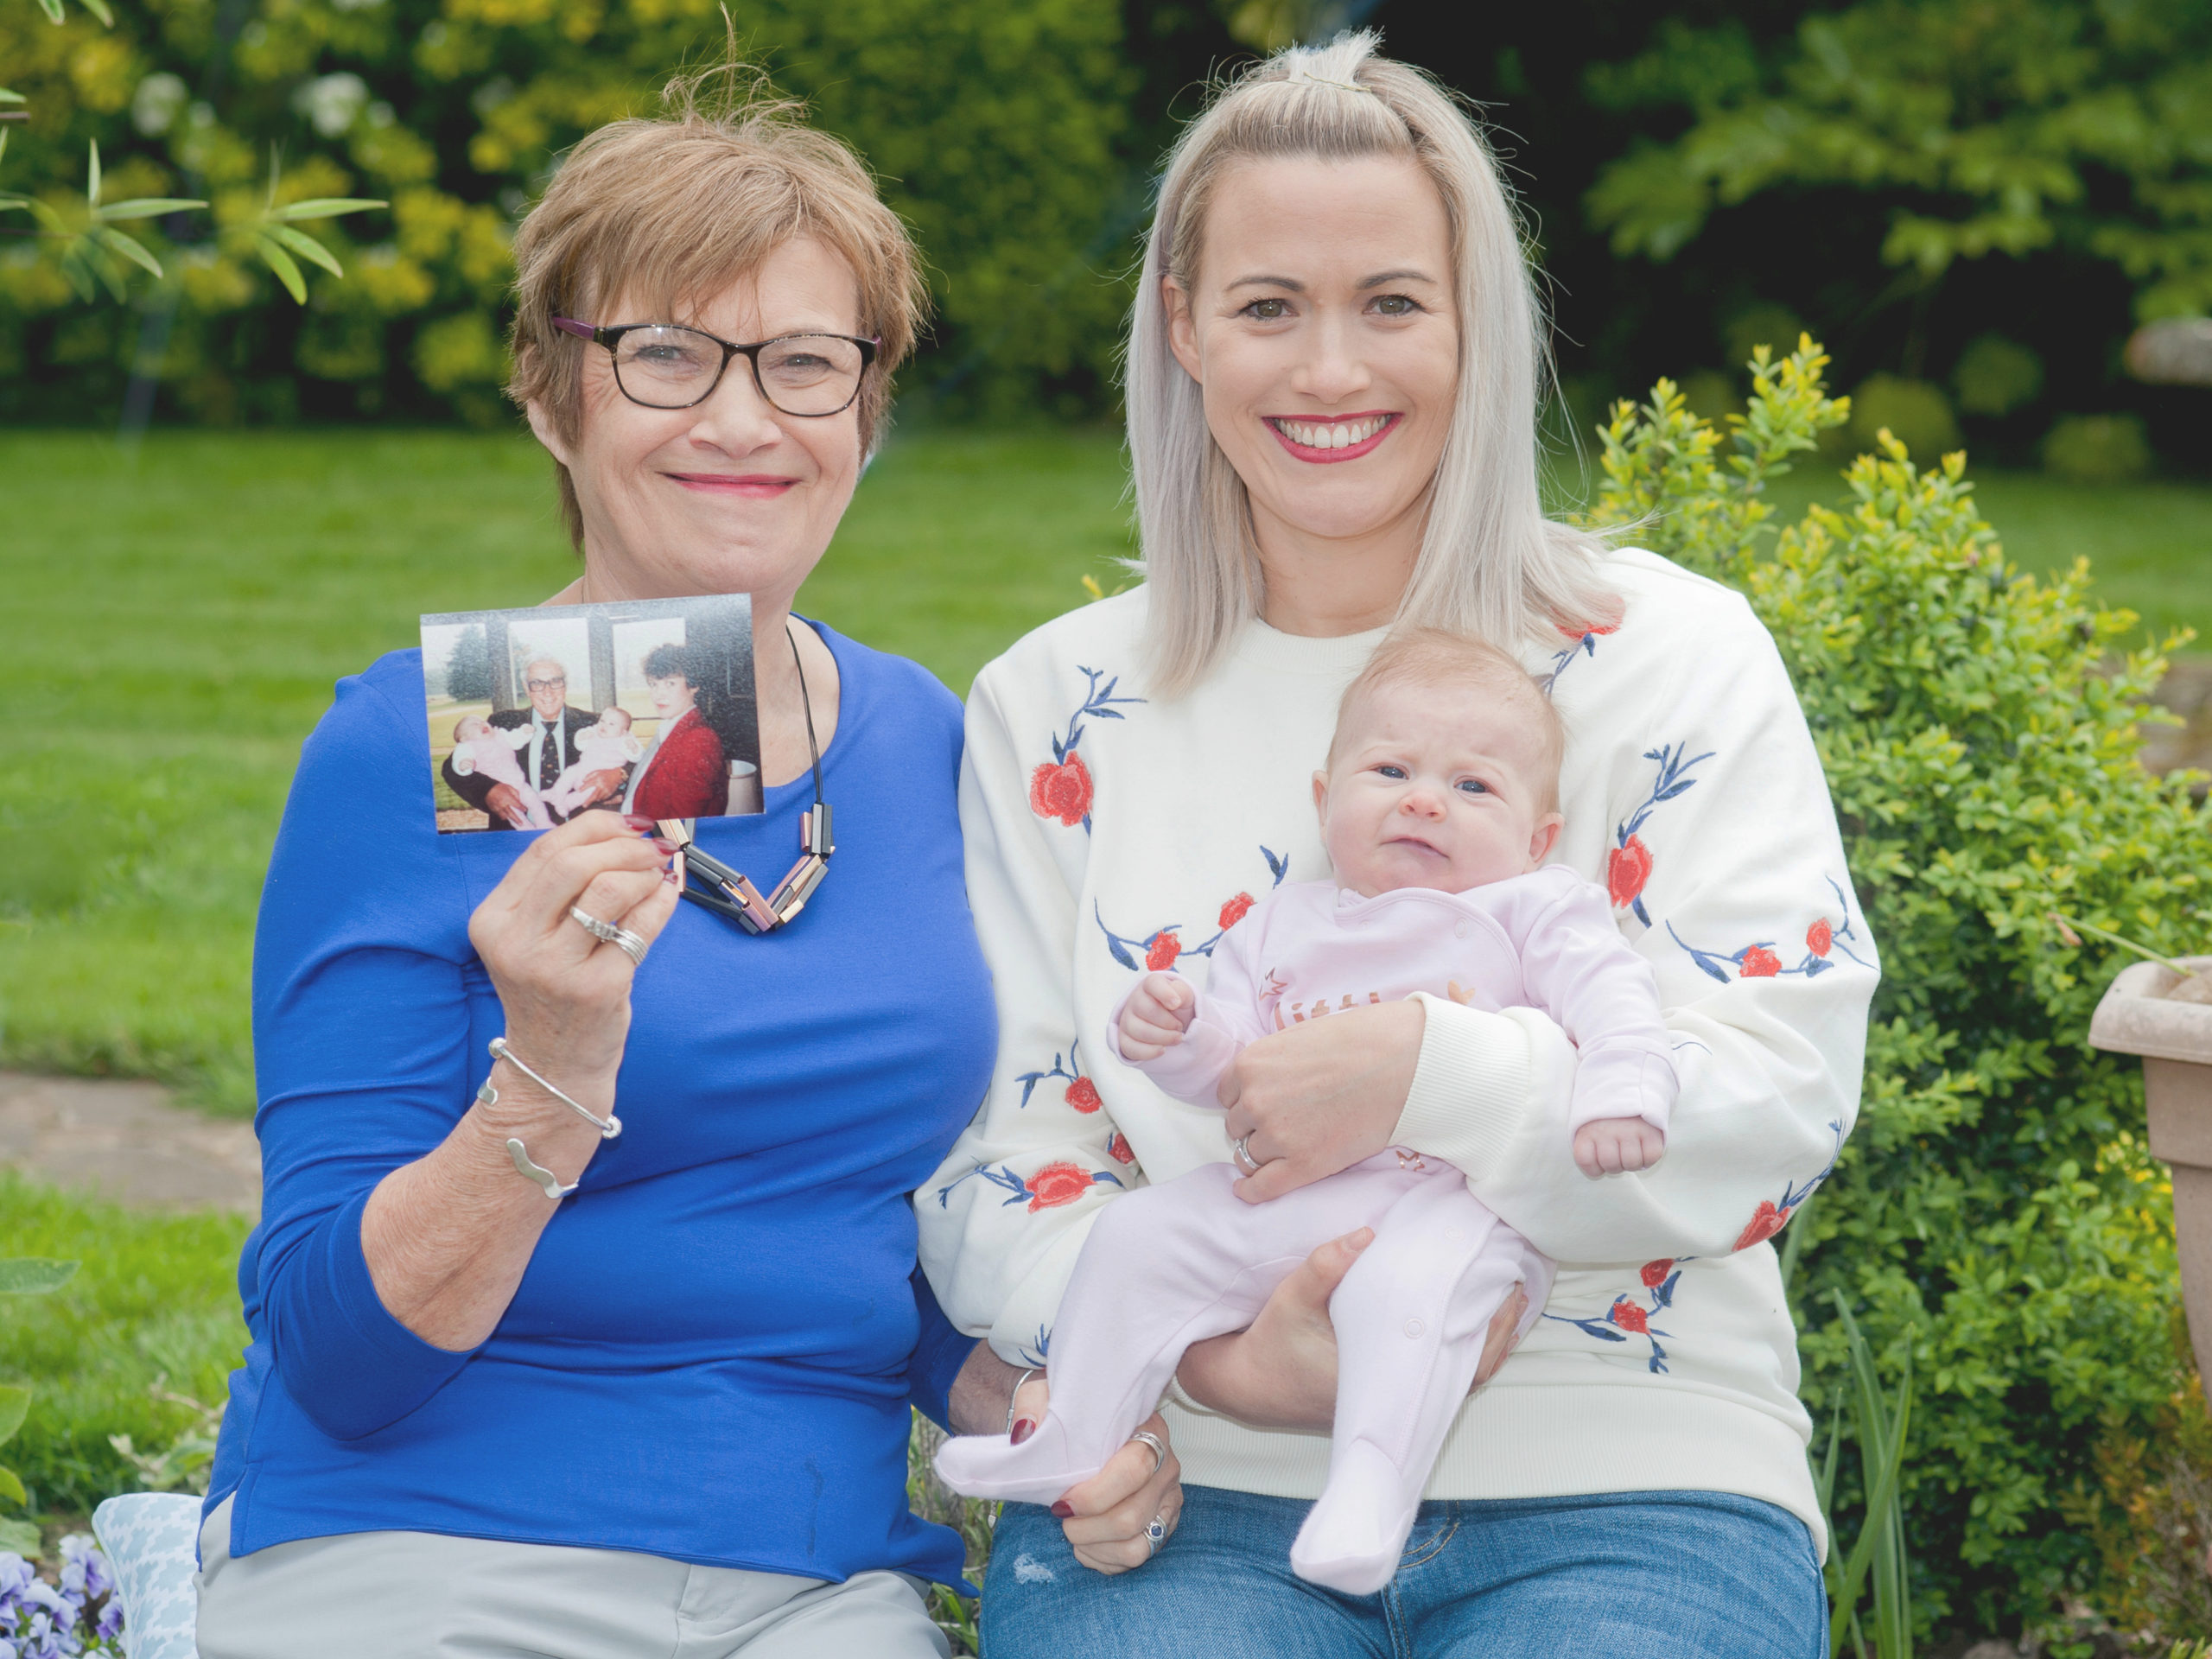 Two generations of IVF babies